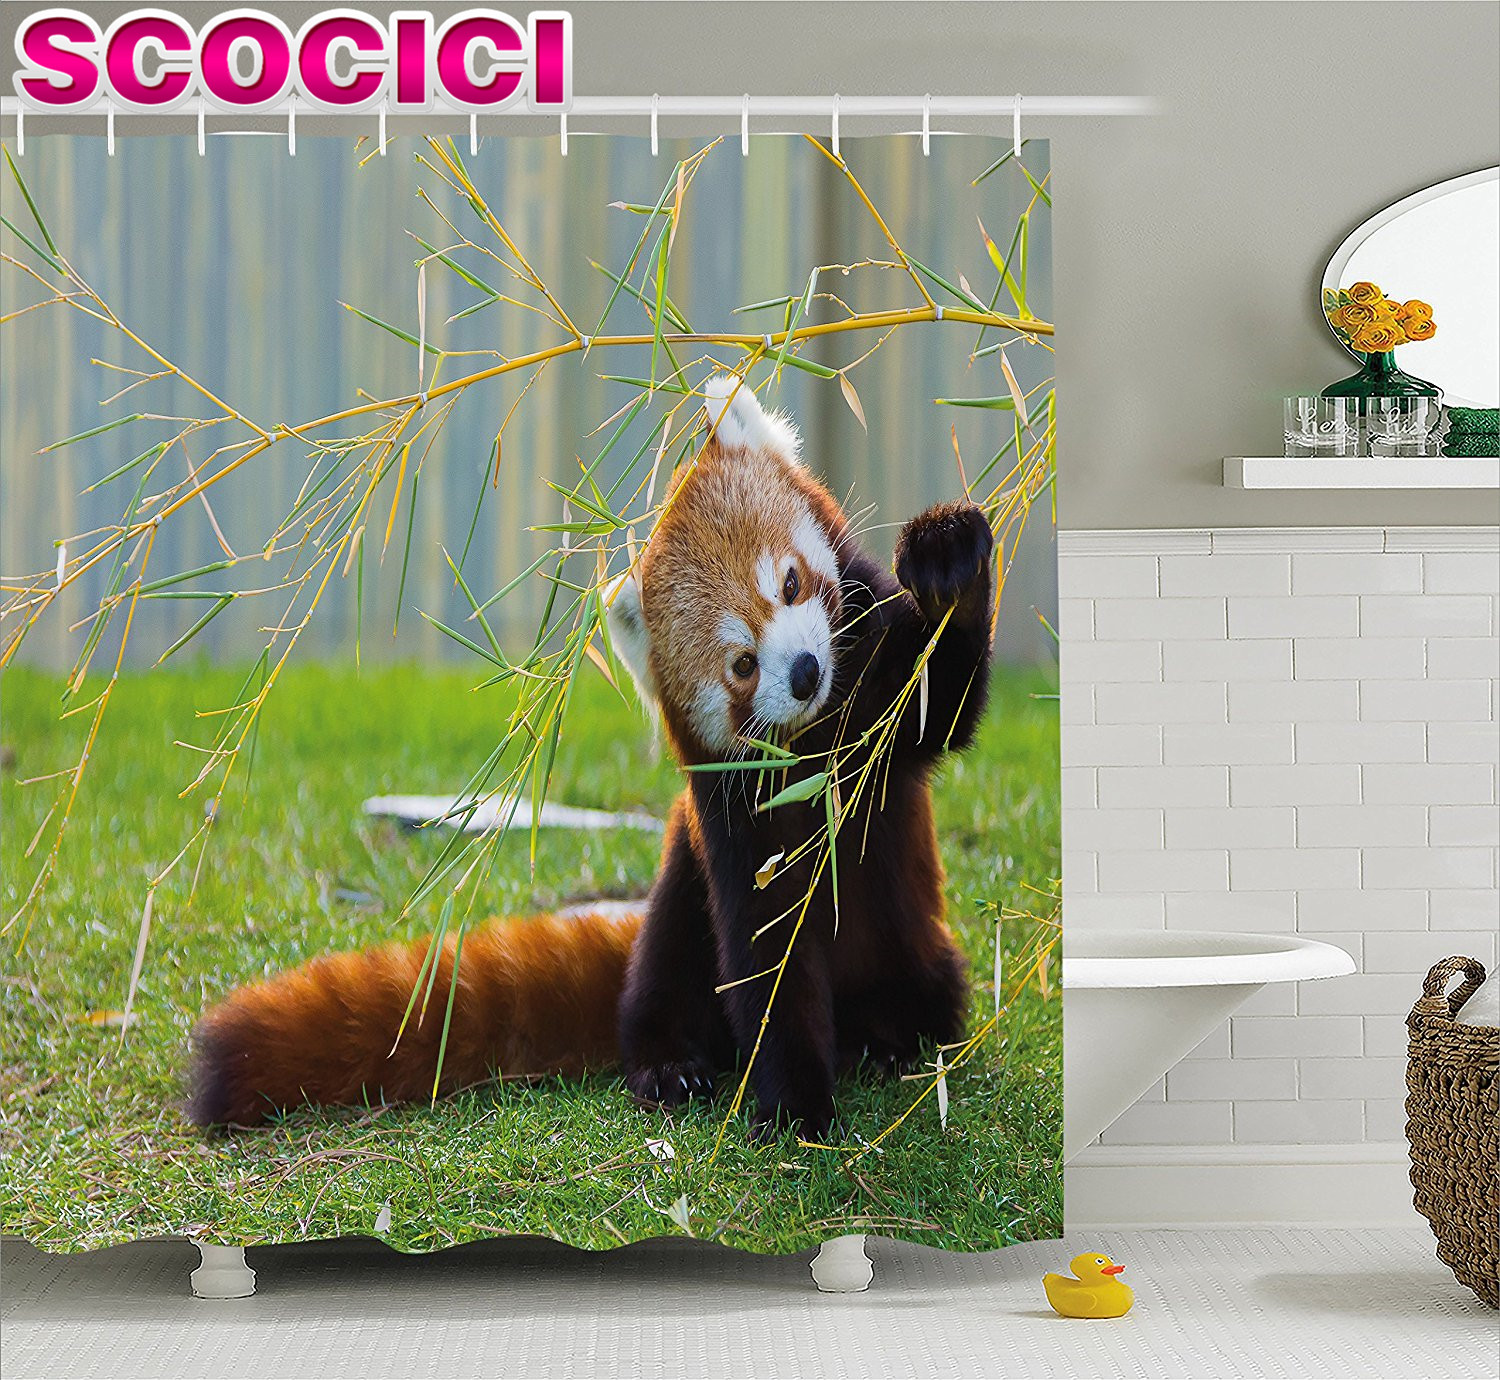 Wildlife Decor Shower Curtain Cute Red Panda On The Field Playing With Bamboo Branches Native Himalayas